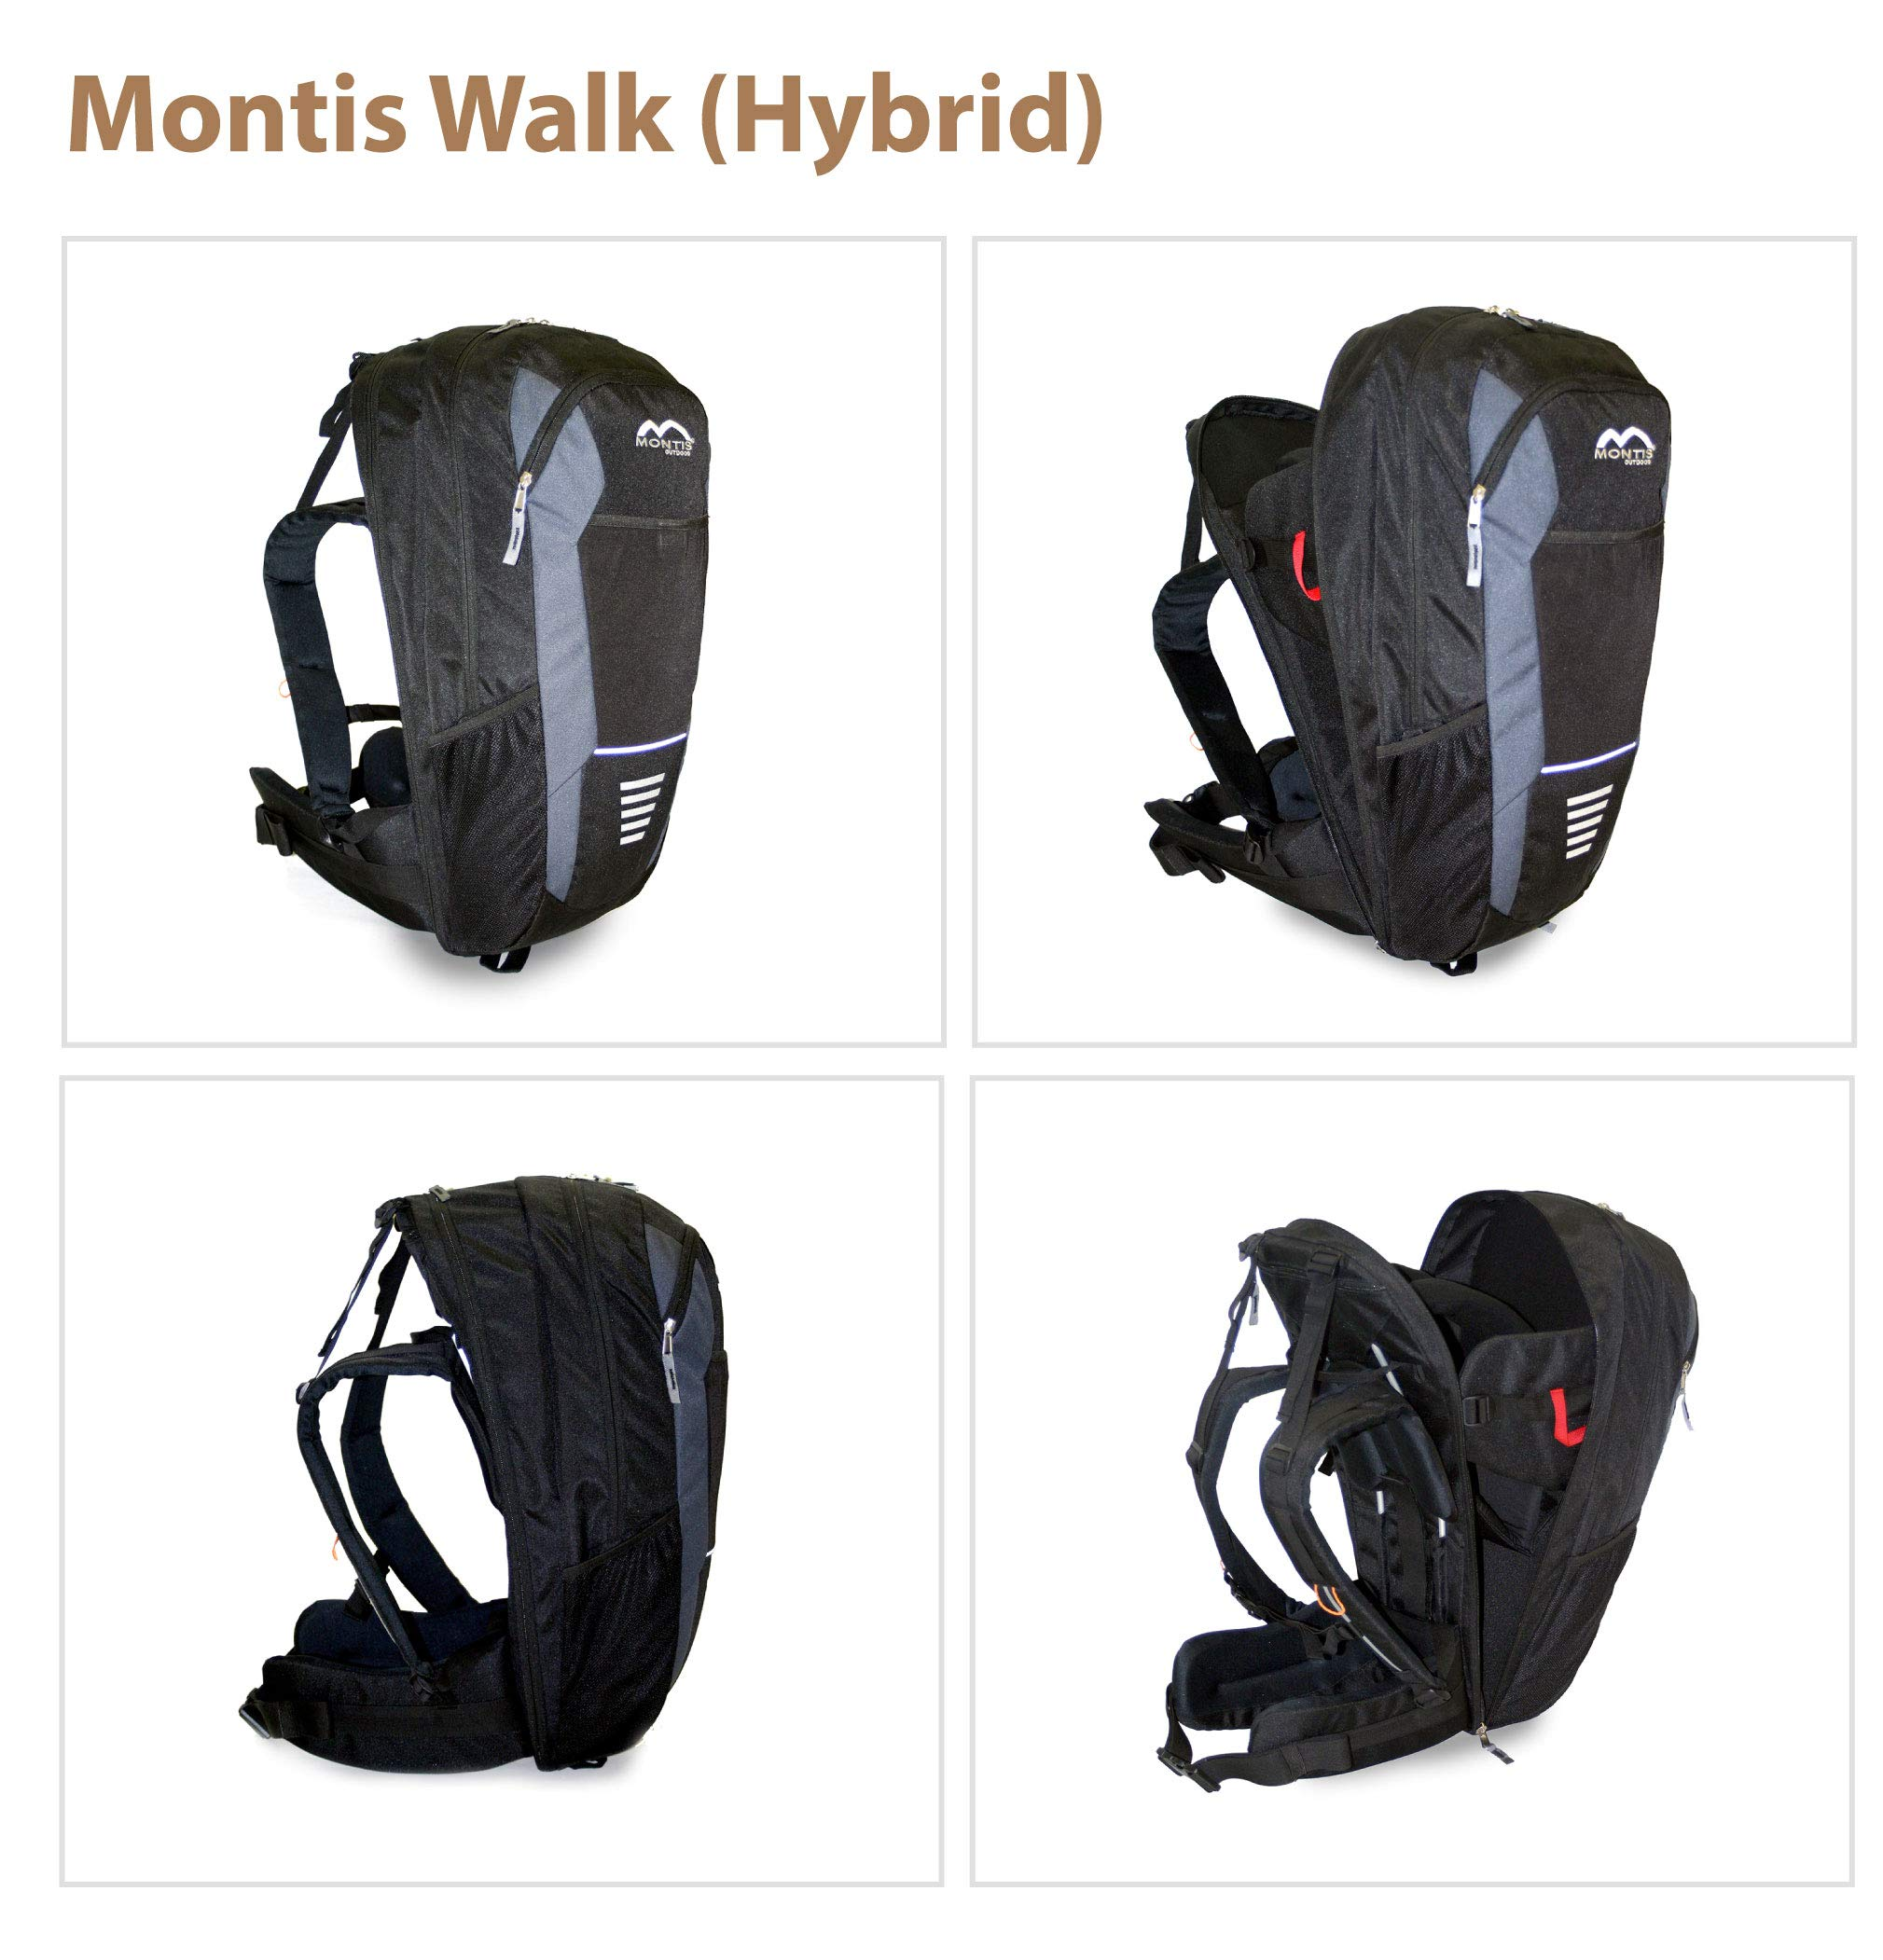 MONTIS WALK, back carrier, child carrier, backpack up to 15kg M MONTIS OUTDOOR 61cm high, 28cm wide; 20 litres; approx. 1850 grams Combination backpack and child carrier, up to 15 kg 3-point safety belt for children 5